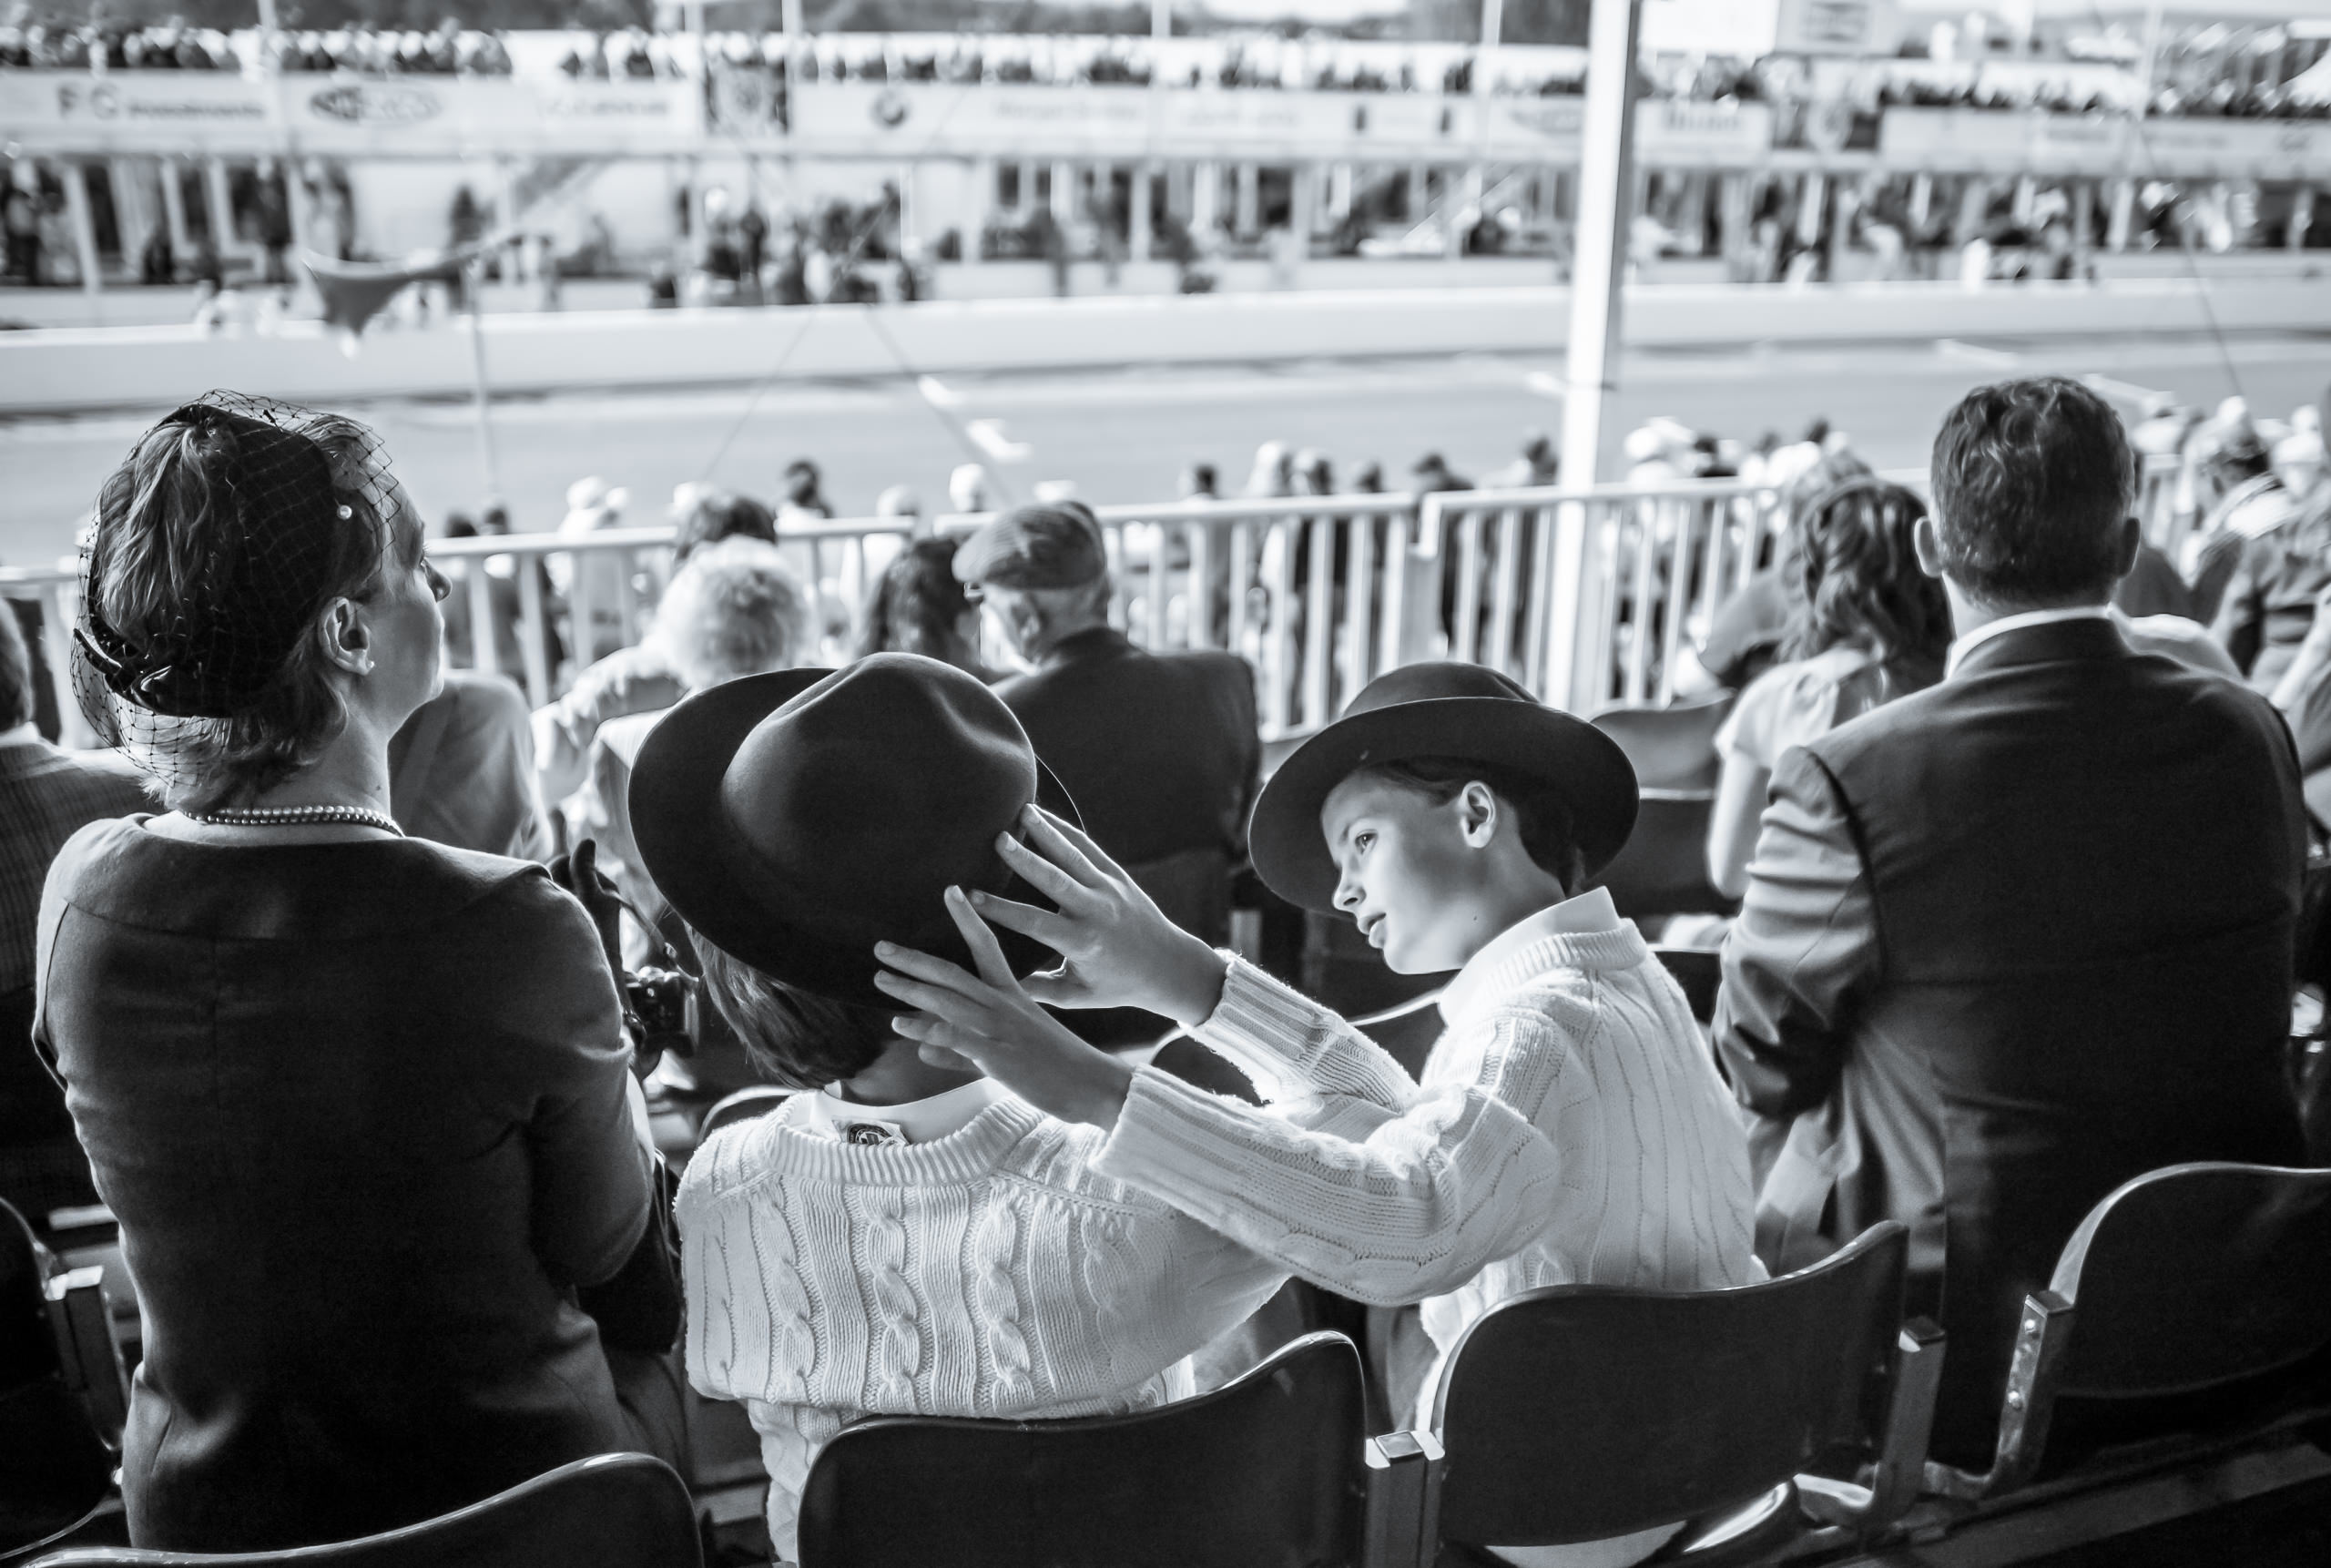 Wayfinder Workshop 21Mm Summilux Goodwood Revival Grandstand Boy Hat By Brett Leica Photographer